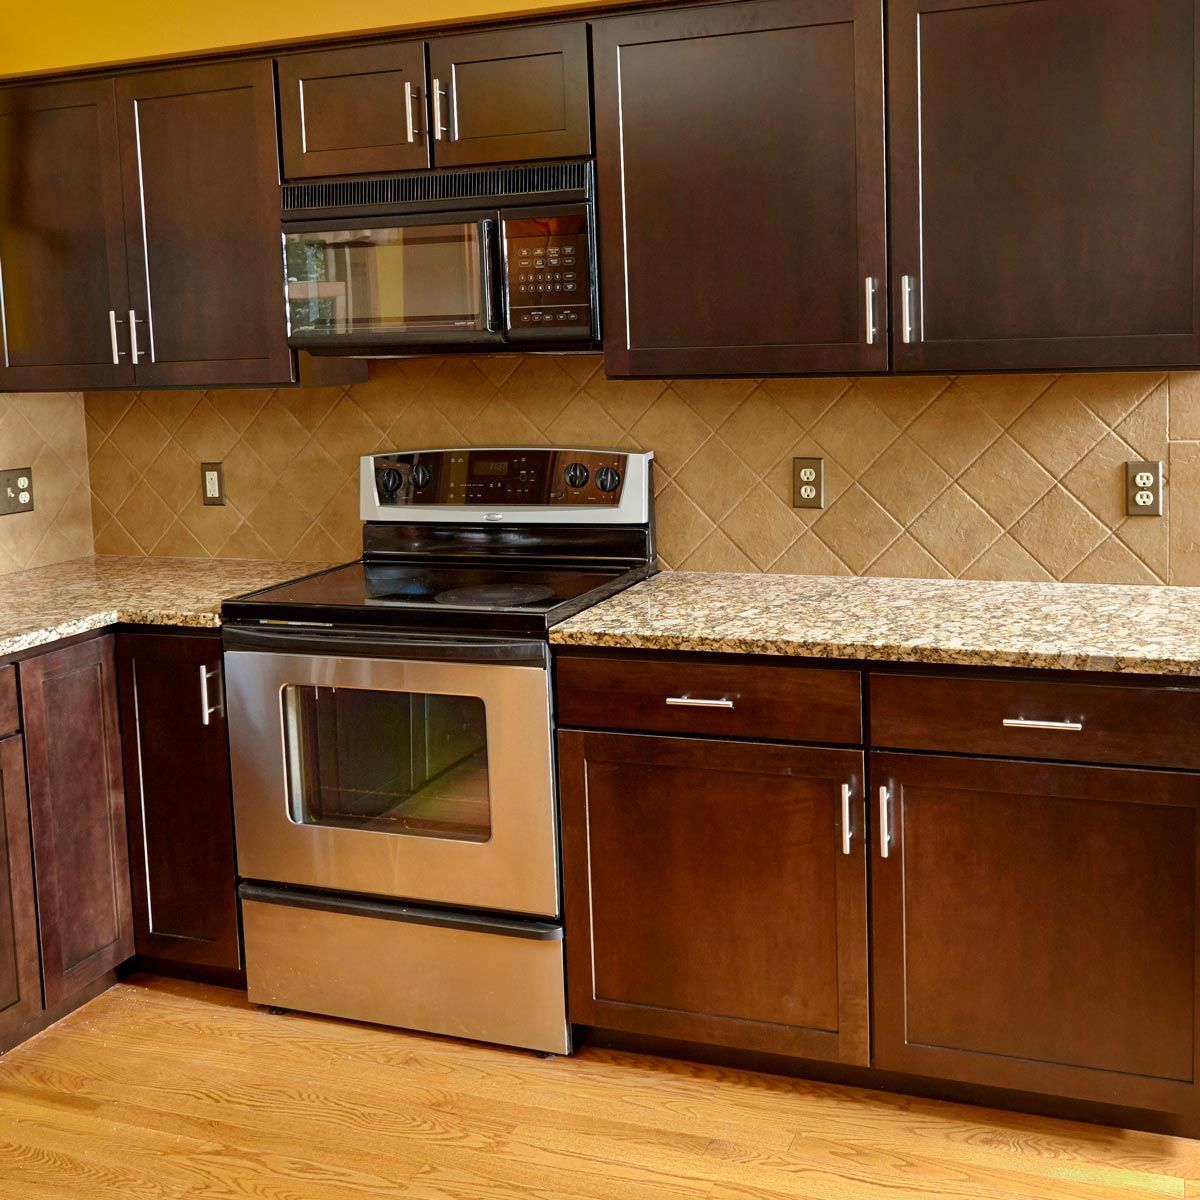 Refacing How to Reface Kitchen